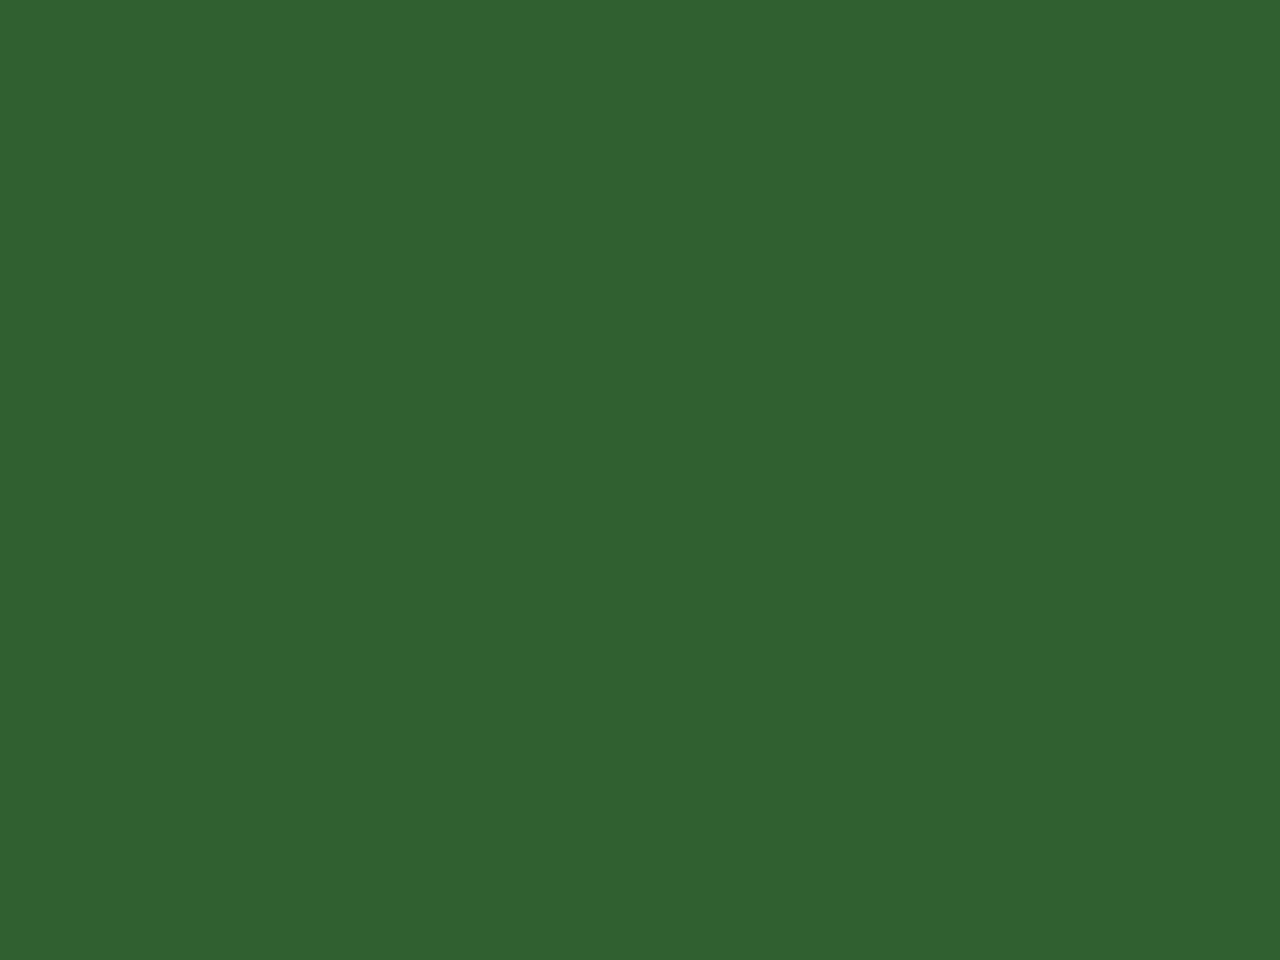 1280x960 Mughal Green Solid Color Background